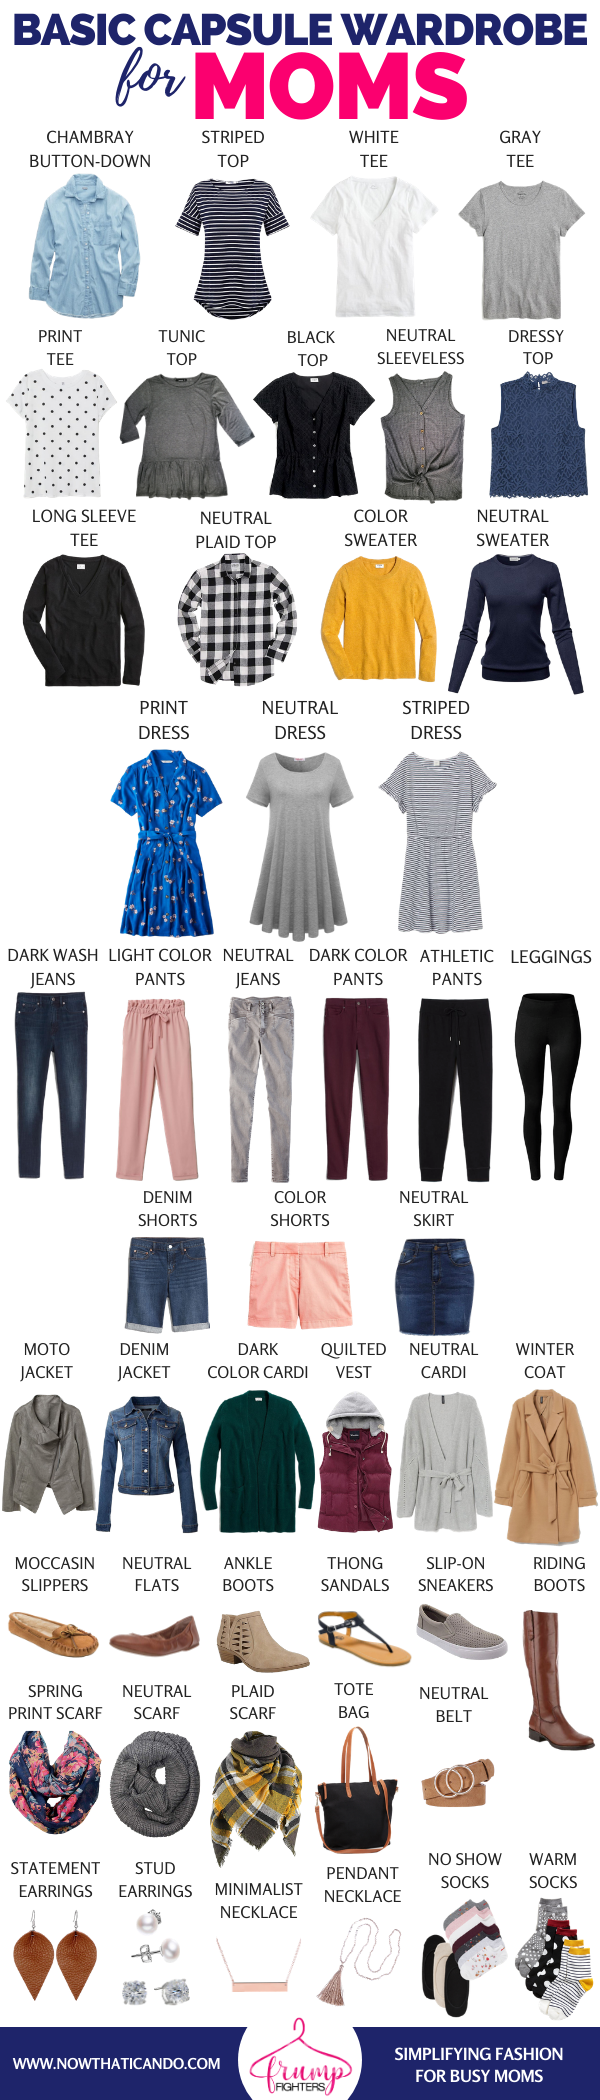 capsule wardrobe for moms you want to fight the frump